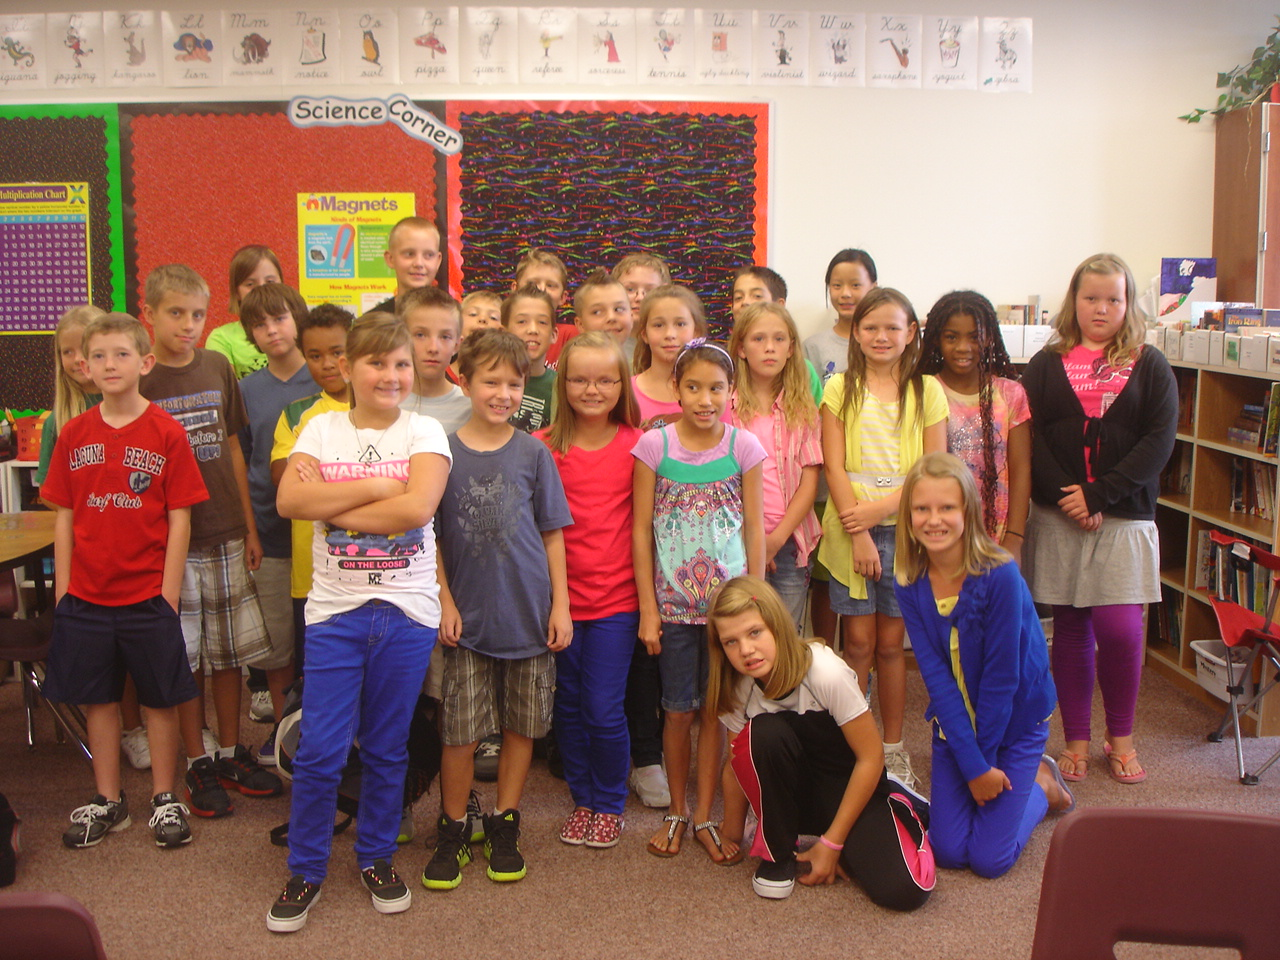 with mrs hiatt mrs thorpe taught us how the new fifth grade core math